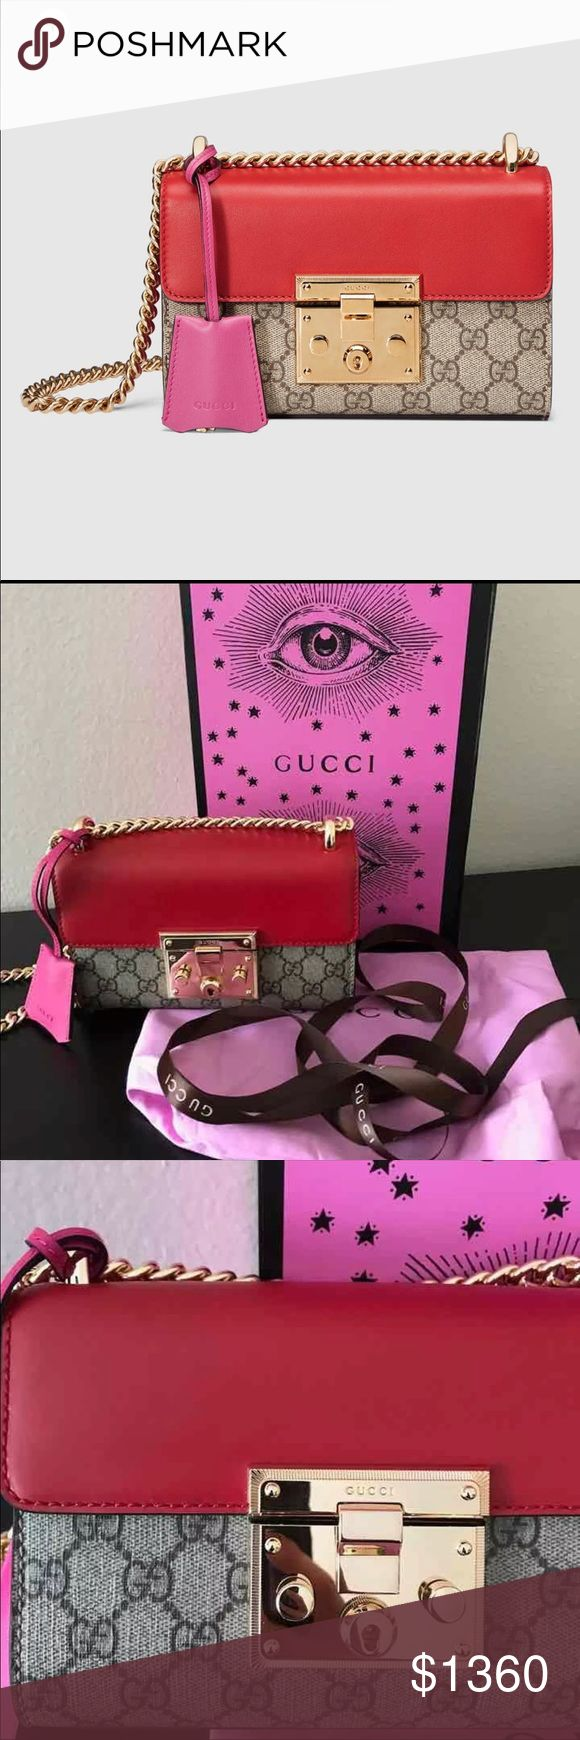 Like new Gucci Padlock Shoulder bag price is firm Like new authentic Gucci Padlock mini shoulder bag. Only used once for a model photo shoot. No signs of wear. Comes with newest pink dust+ authenticity card + box+Gucci shopping bag   Serial number is on the reverse side of the leather tag inside. Number available upon request.  The pink packaging is the lates Gucci packaging. If you are not sure please call Gucci store! Gucci Bags Shoulder Bags